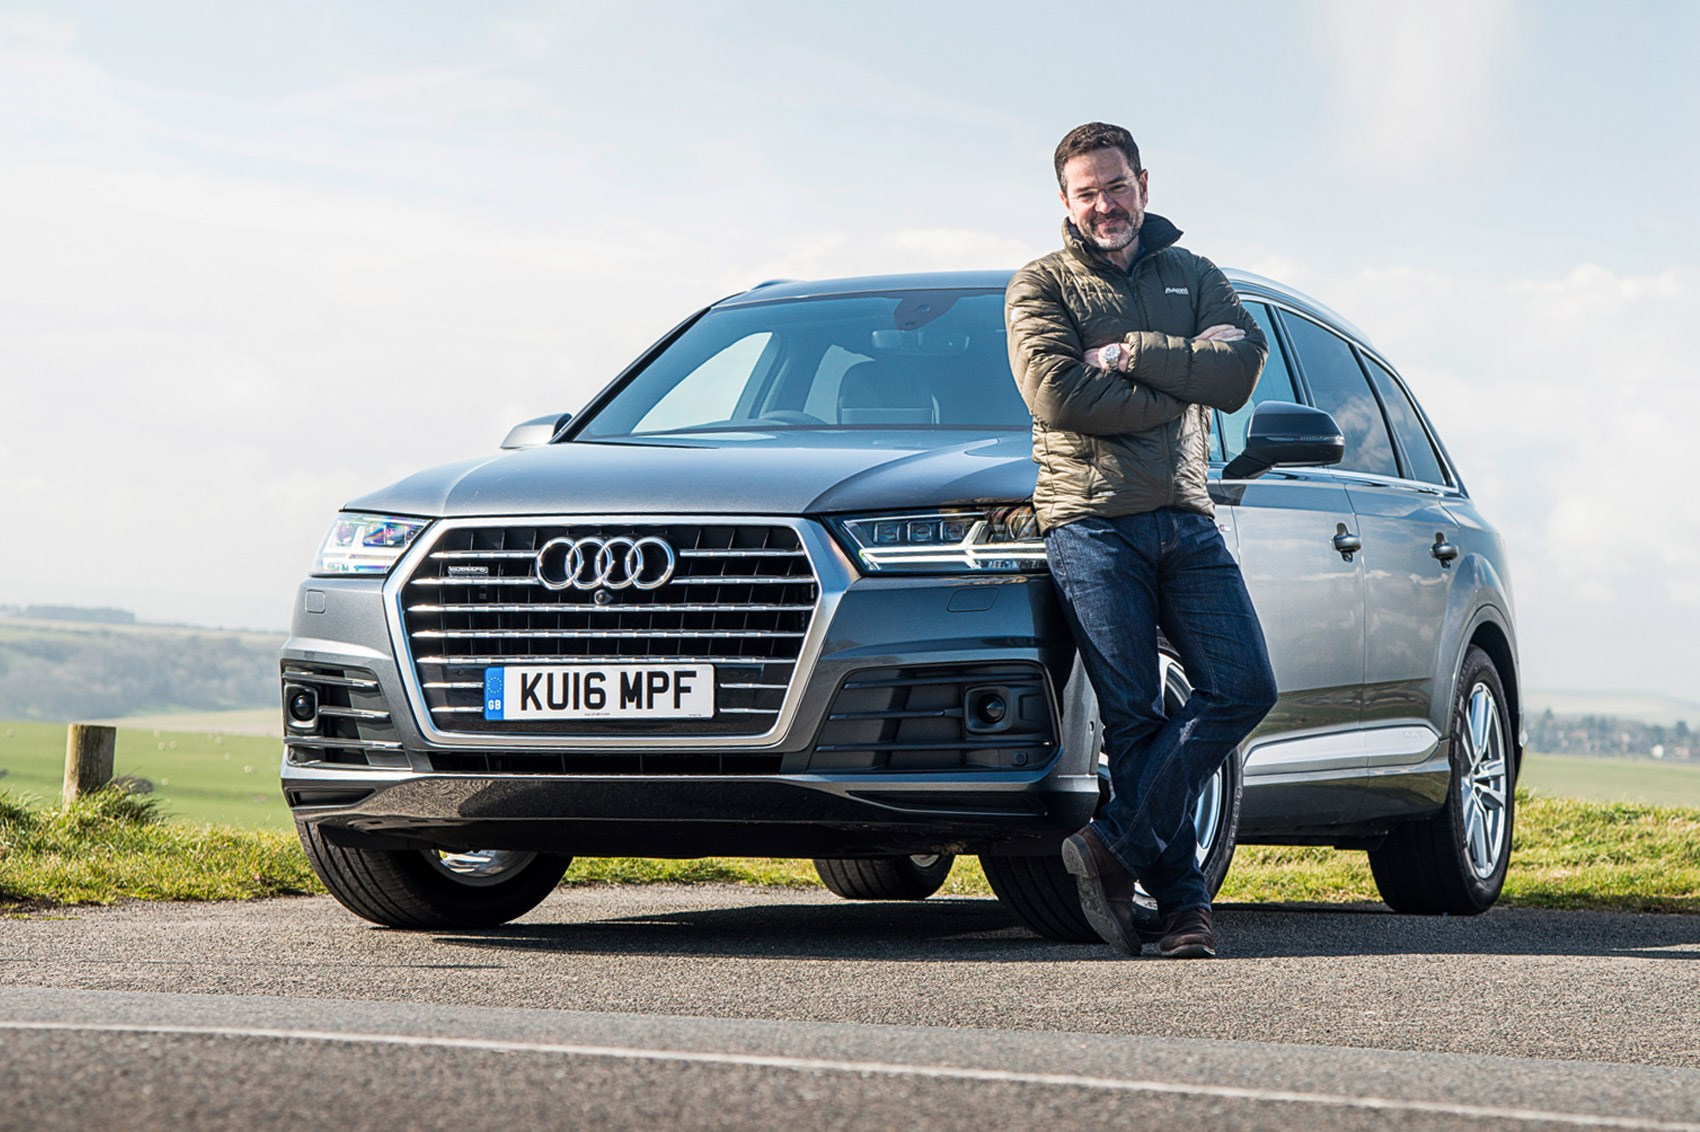 Audi Q7 (2017) long-term test review by CAR Magazine